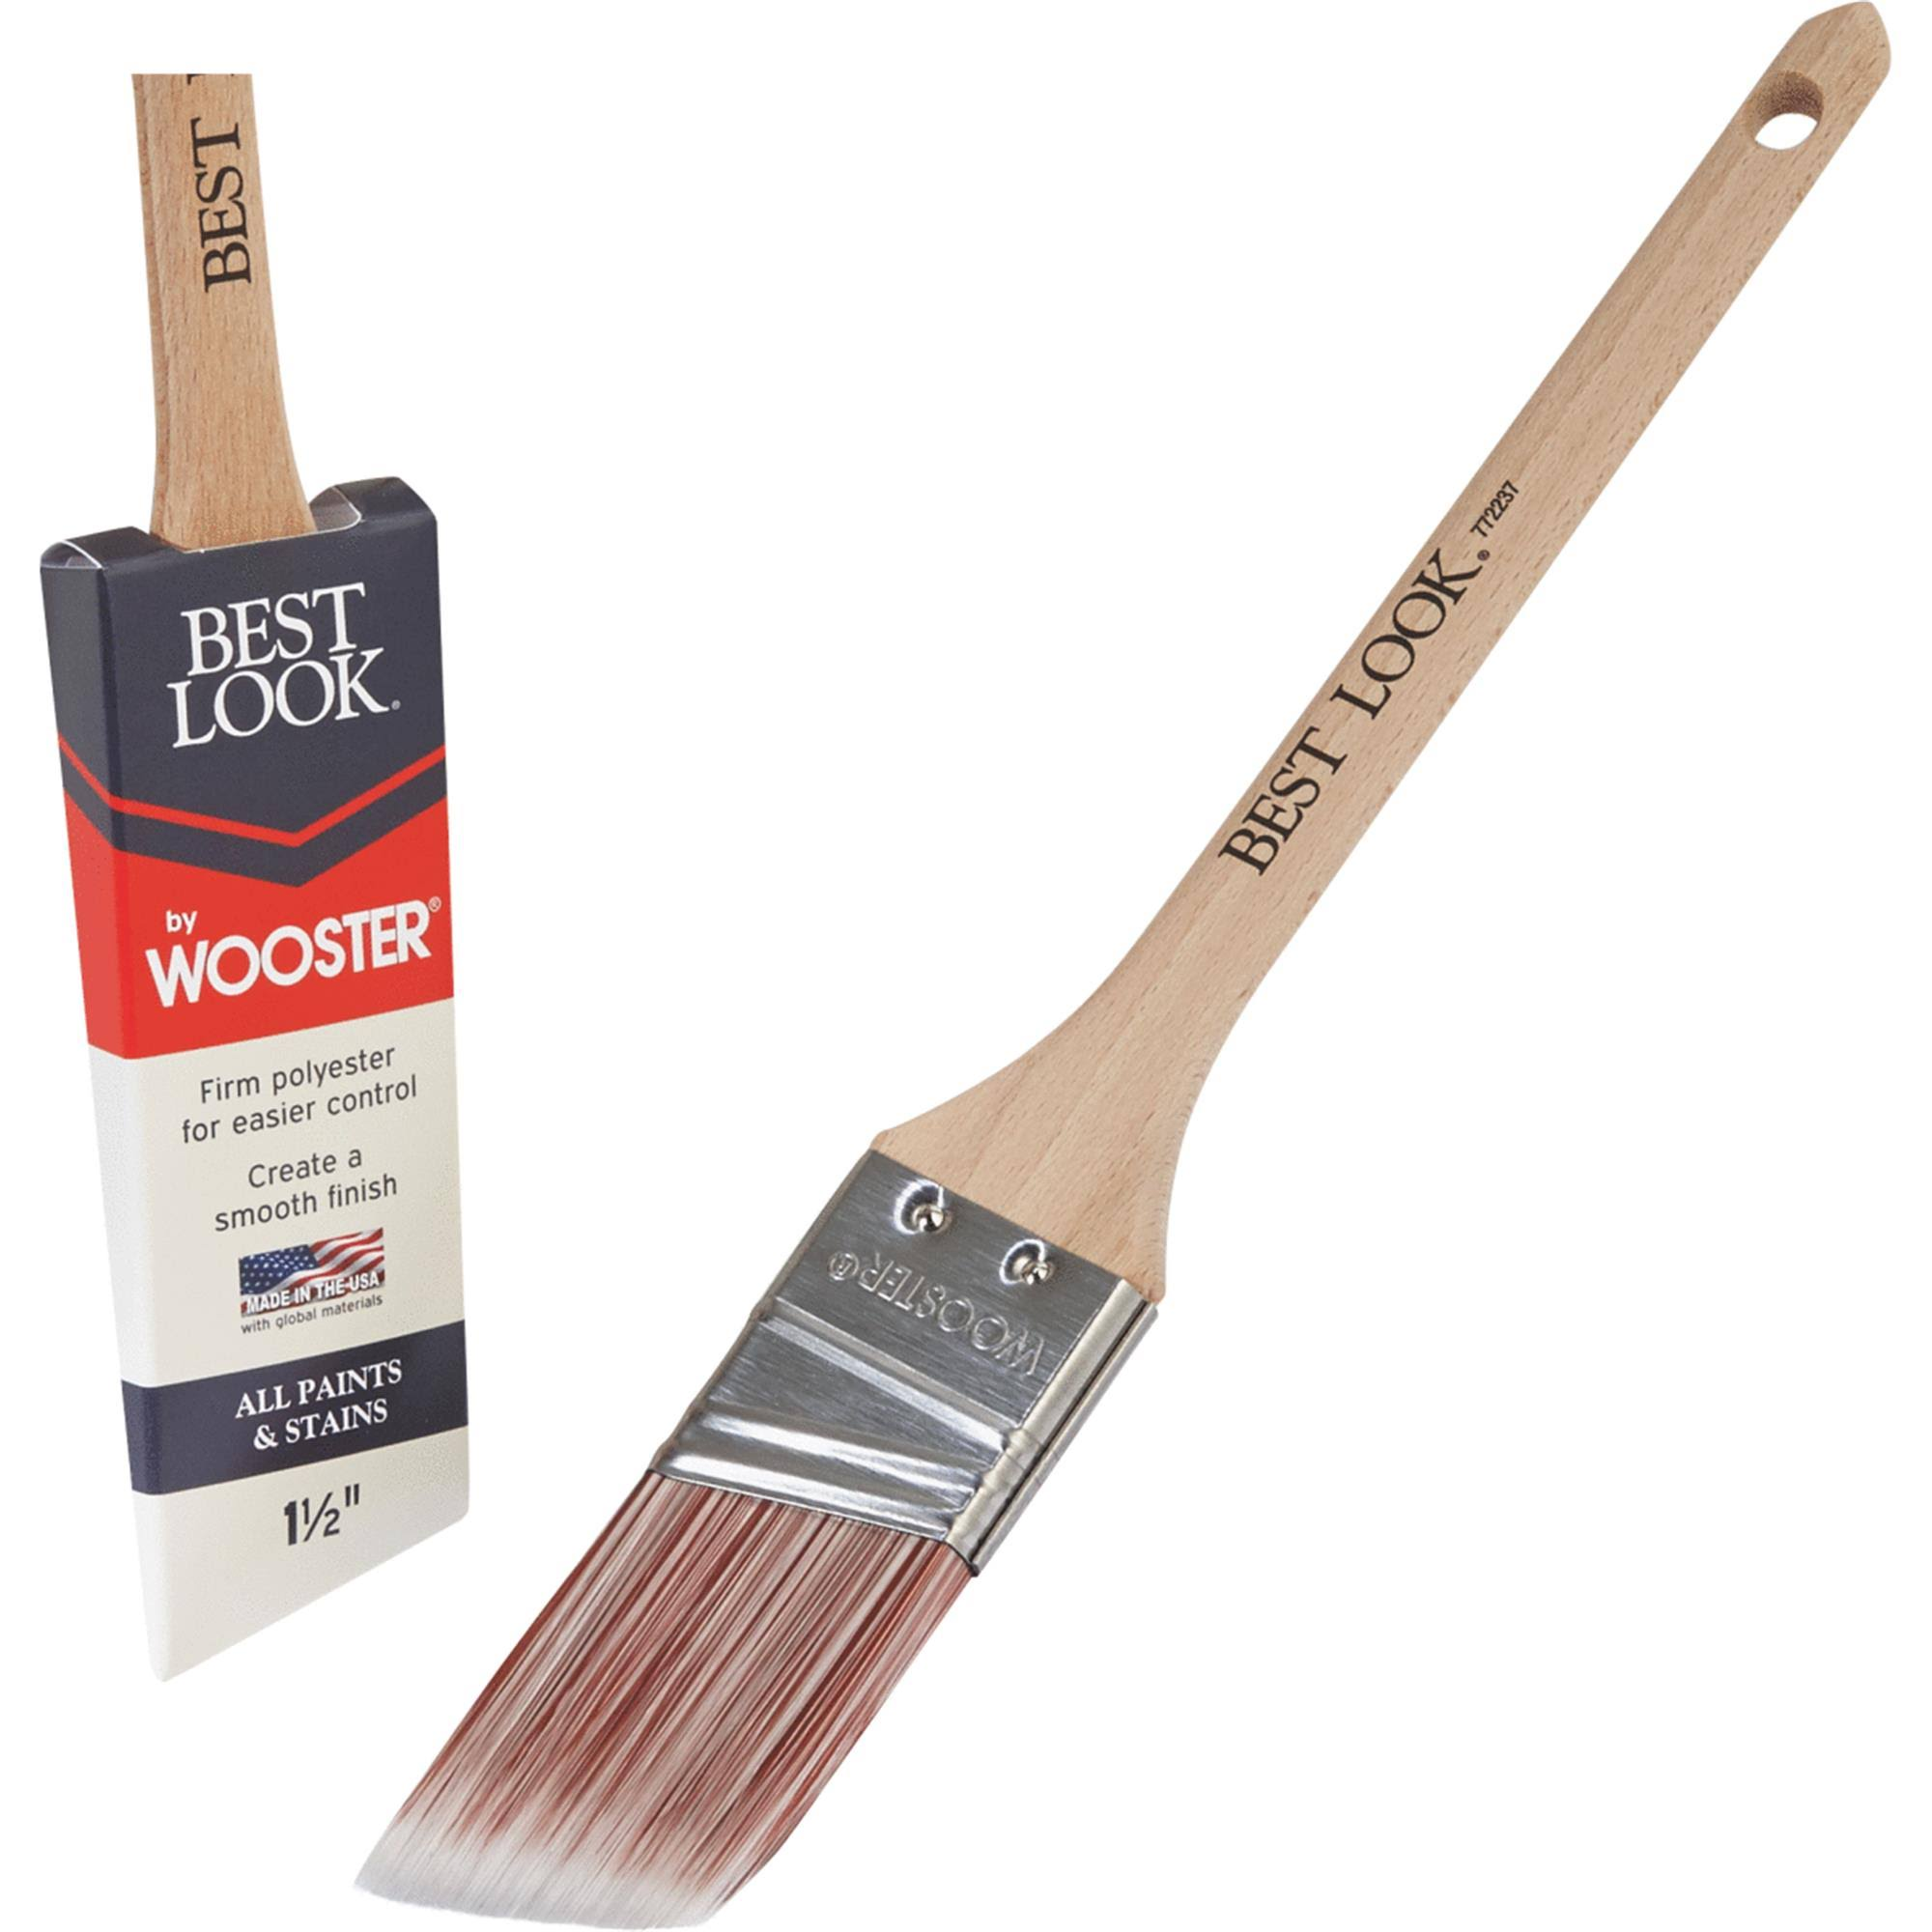 Best Look by Wooster Polyester Paint Brush - D4021-1 1/2